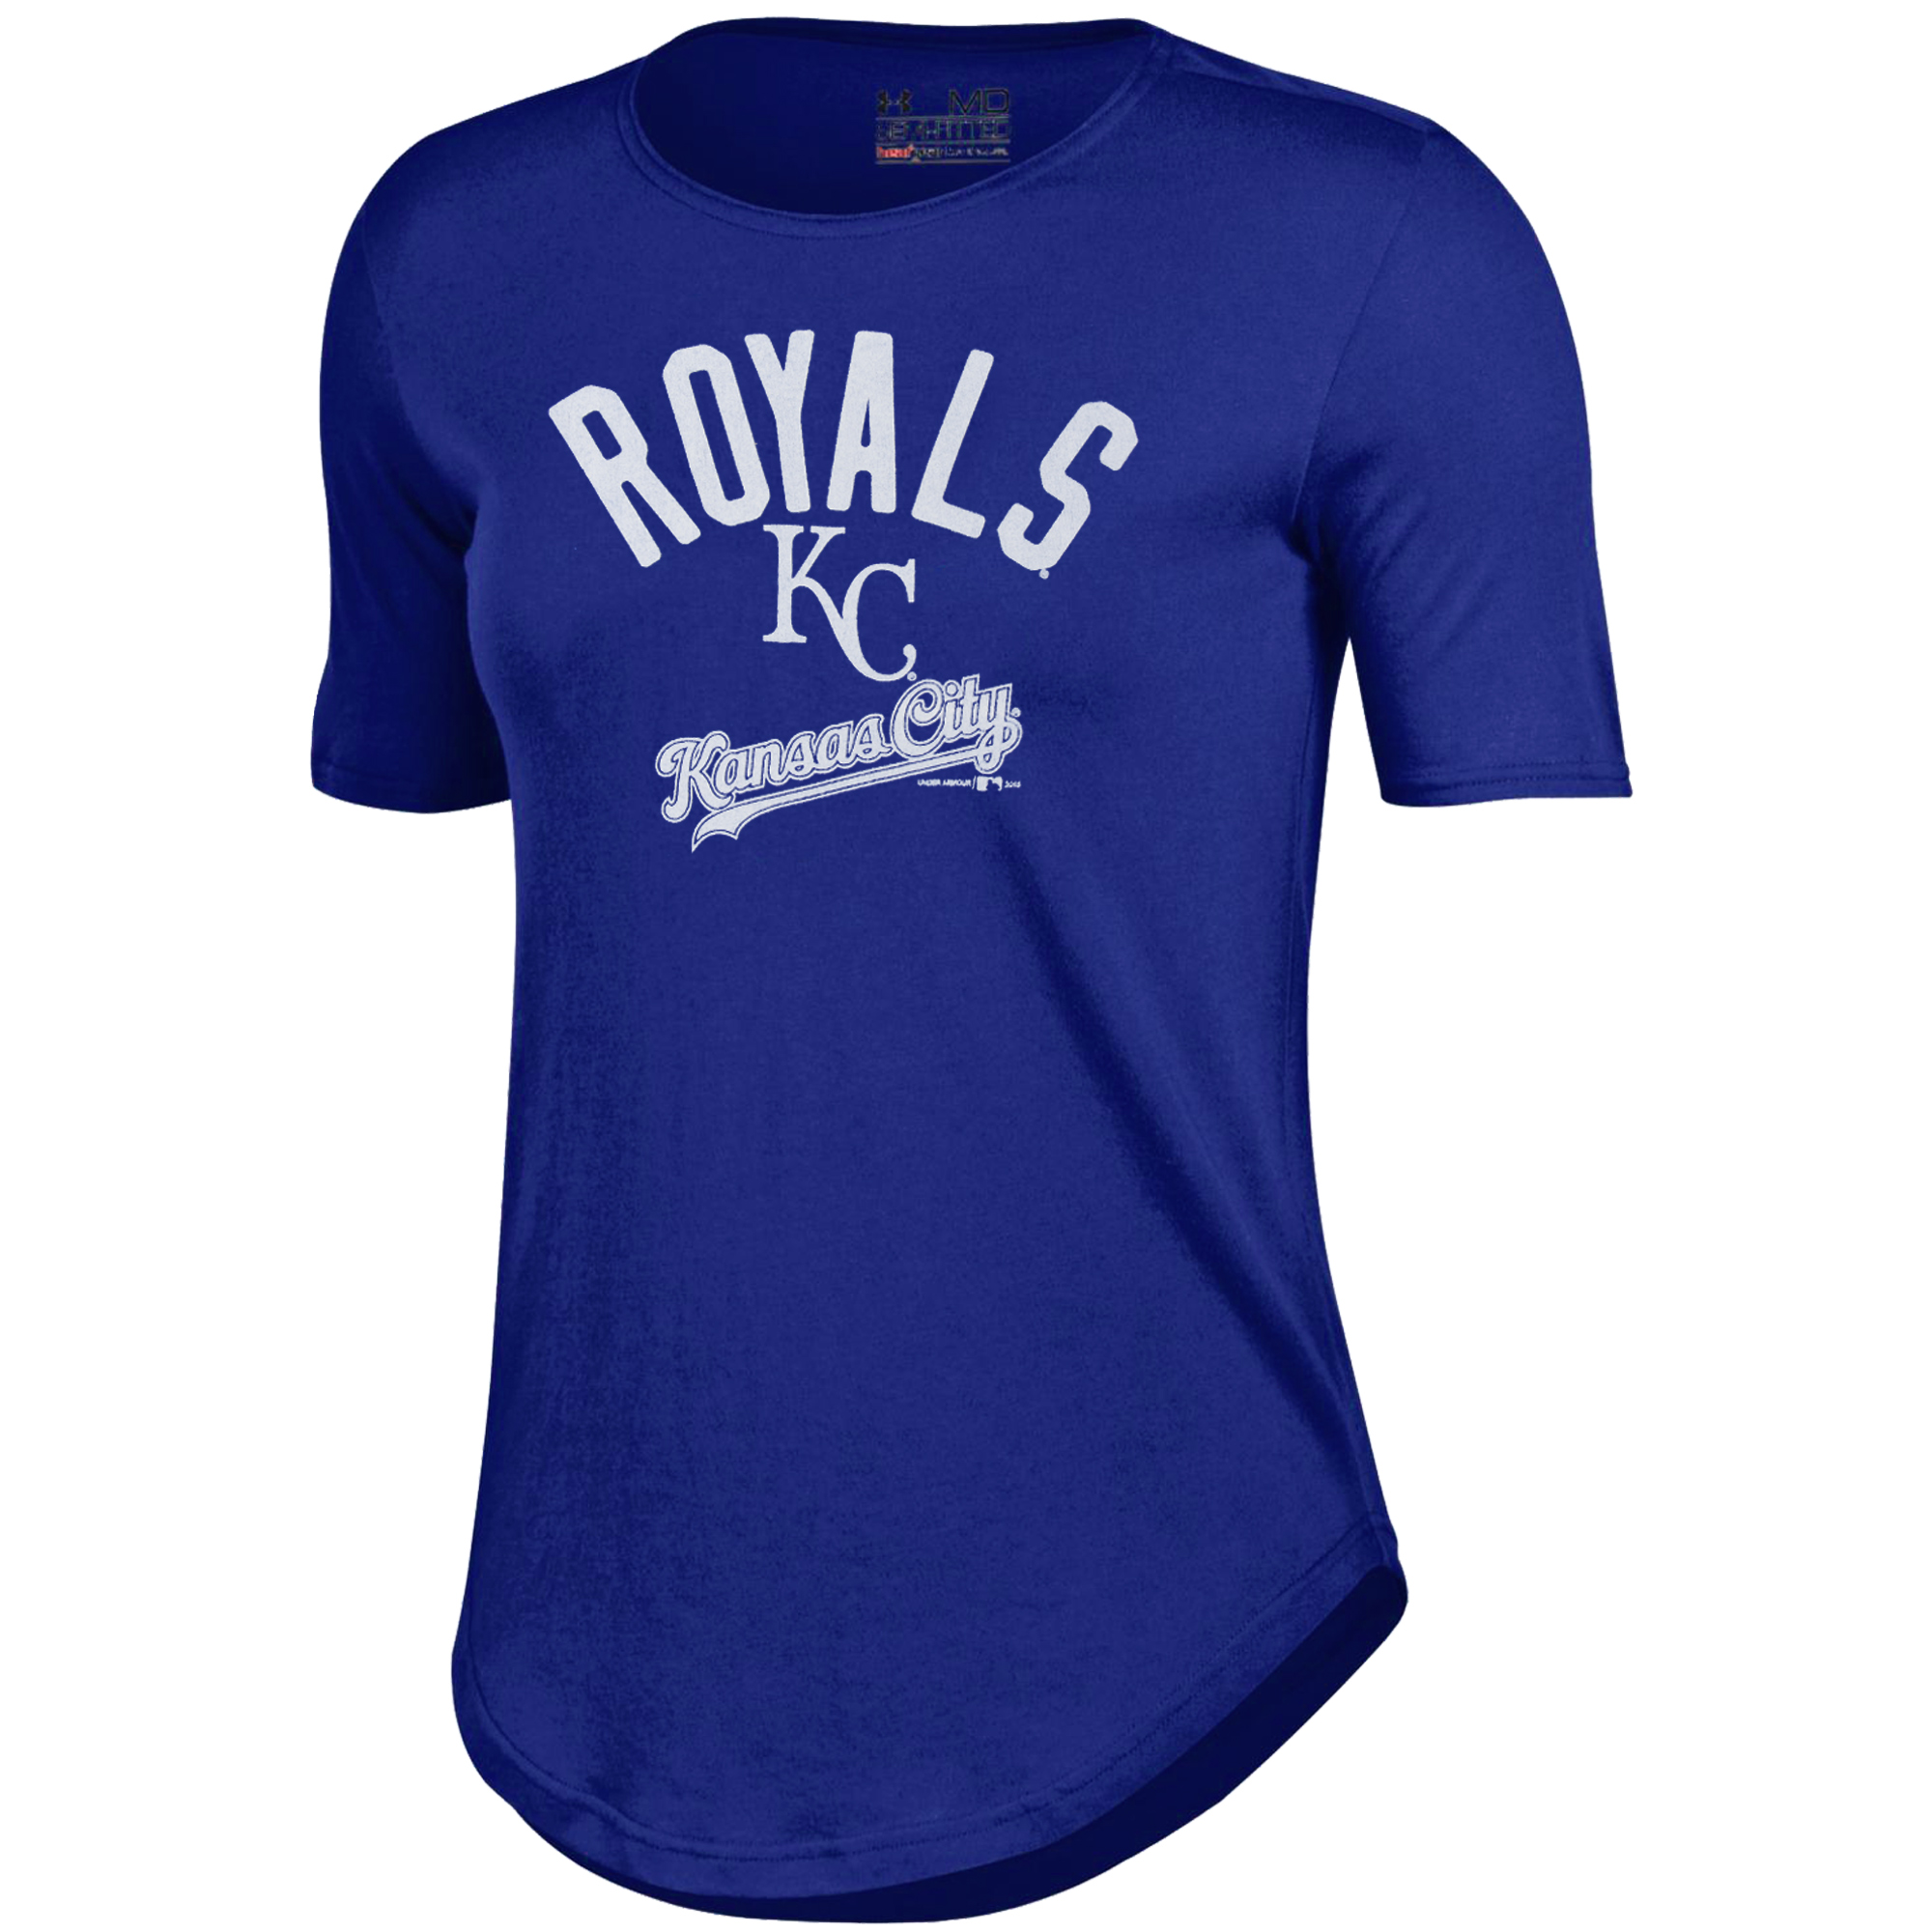 Kansas City Royals Under Armour Women's Rounded Hem Performance T-Shirt - Royal